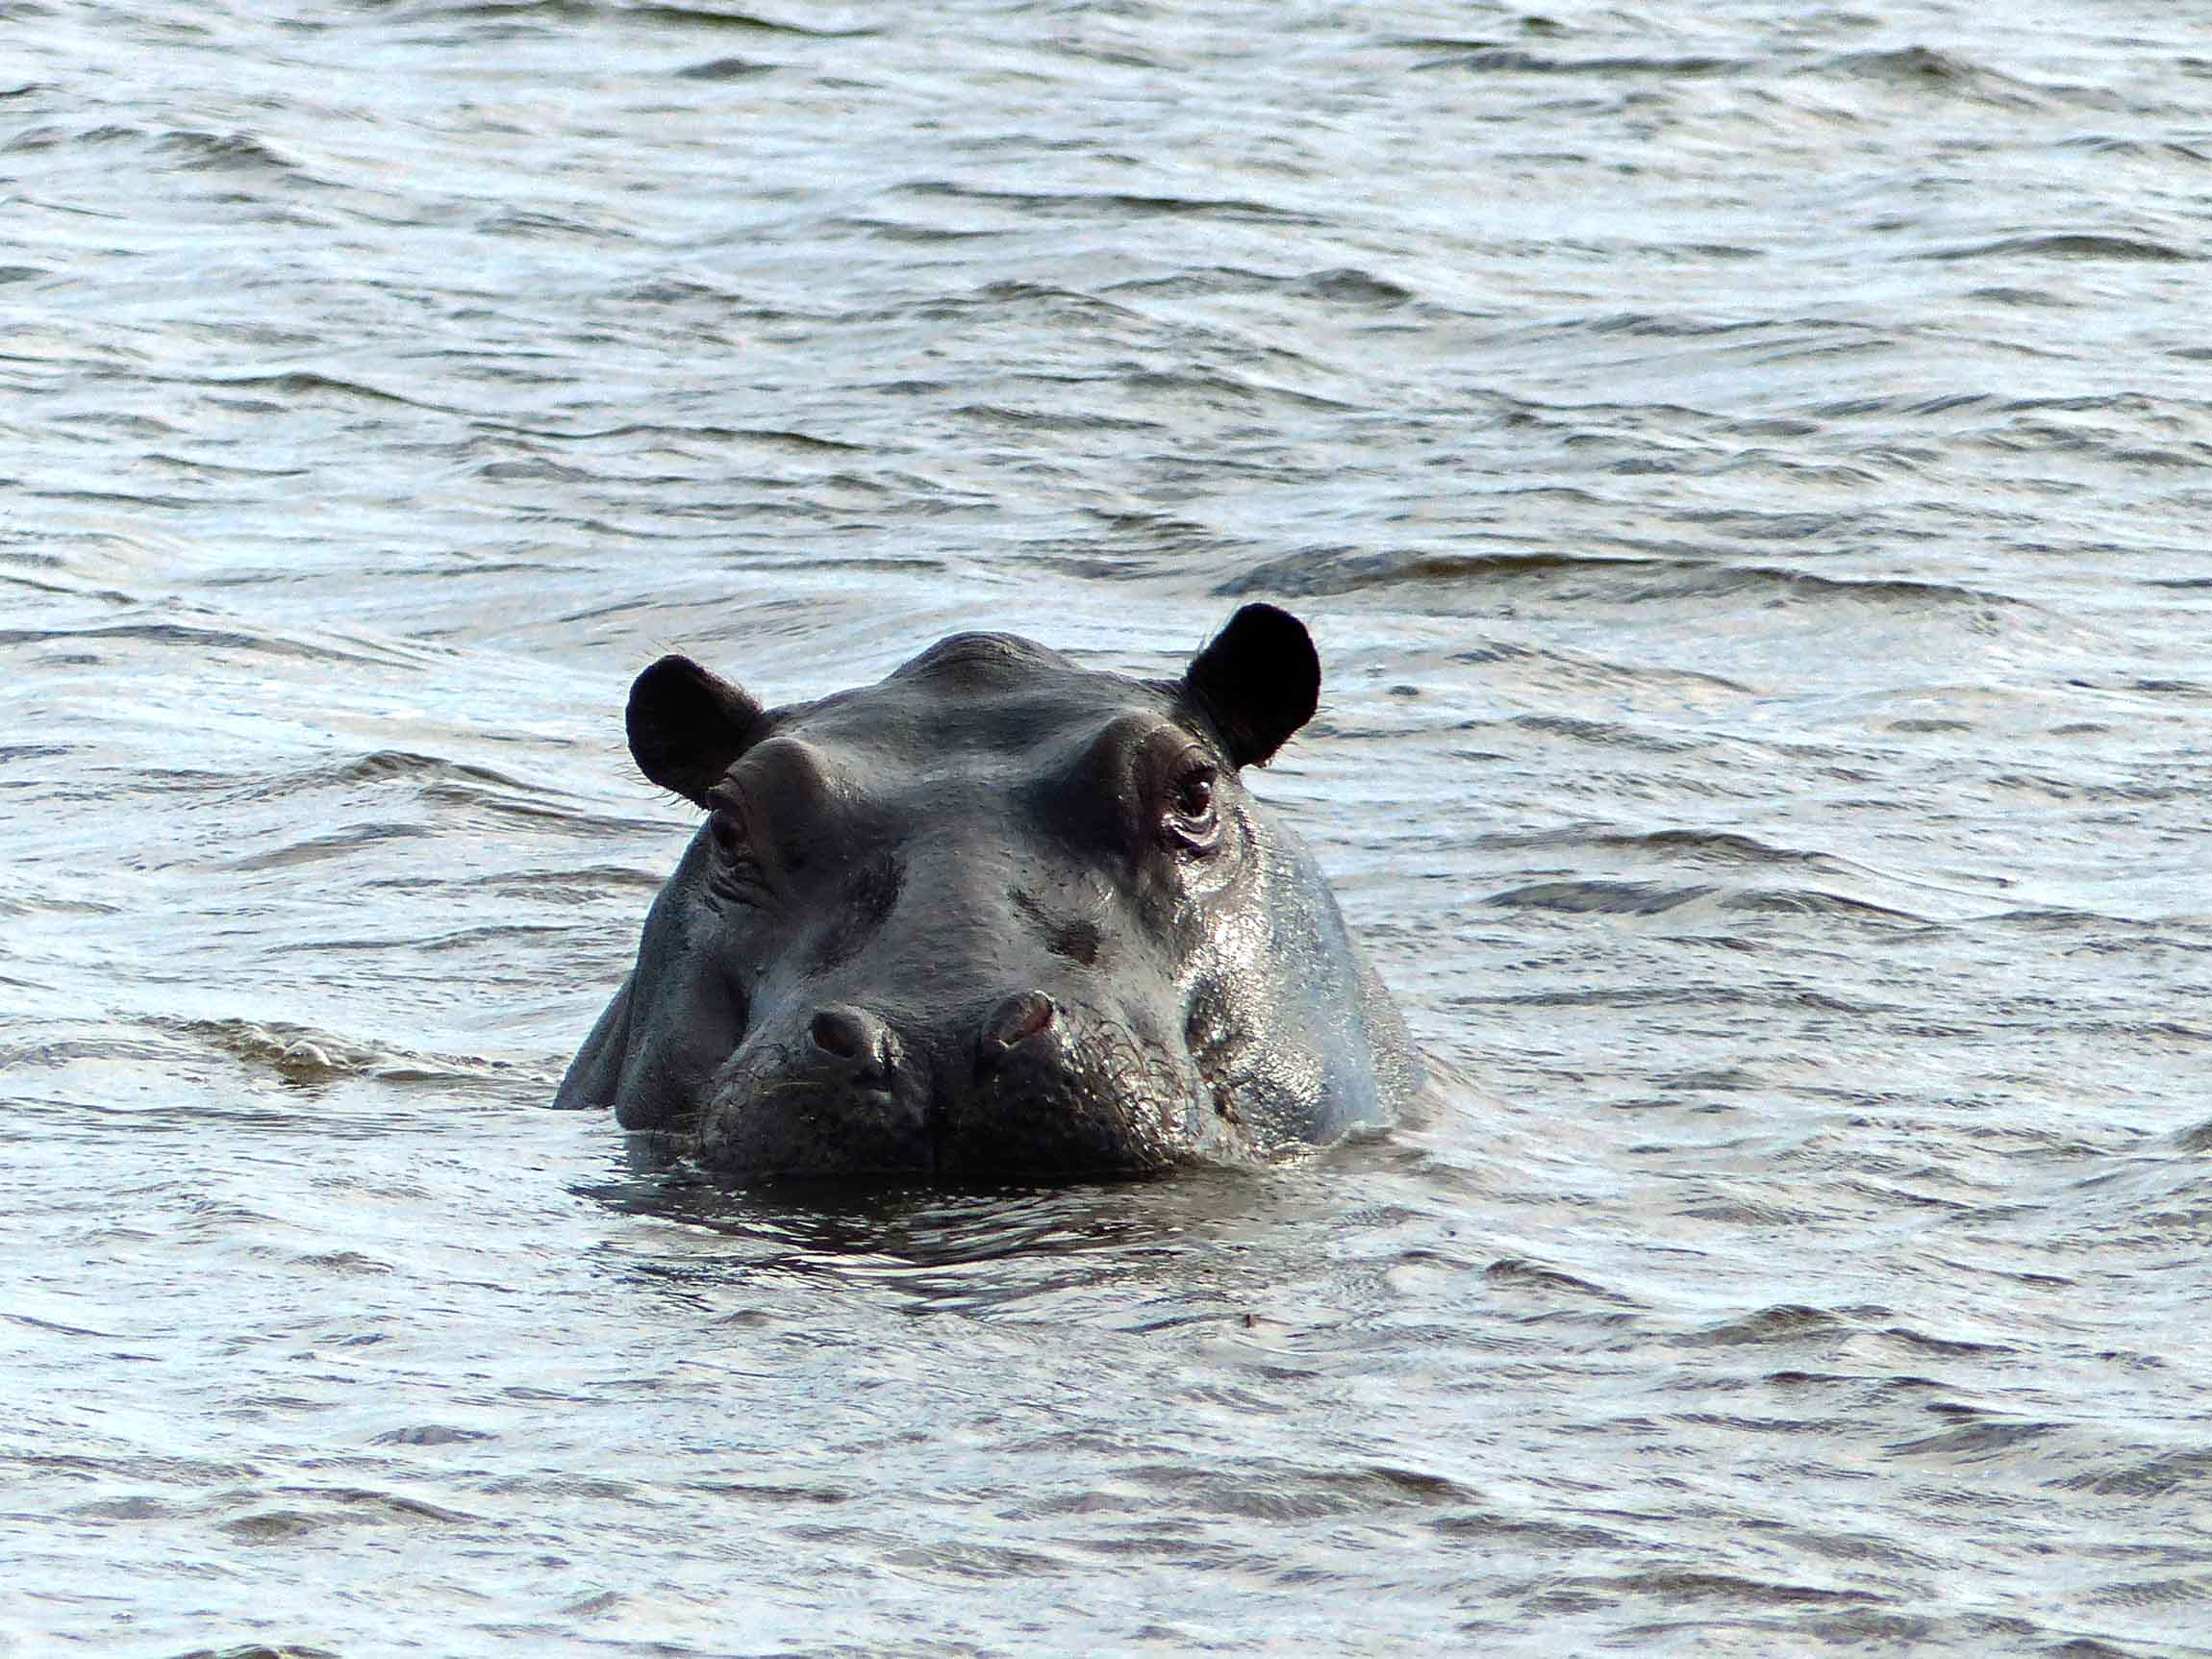 Hippo looking out of water